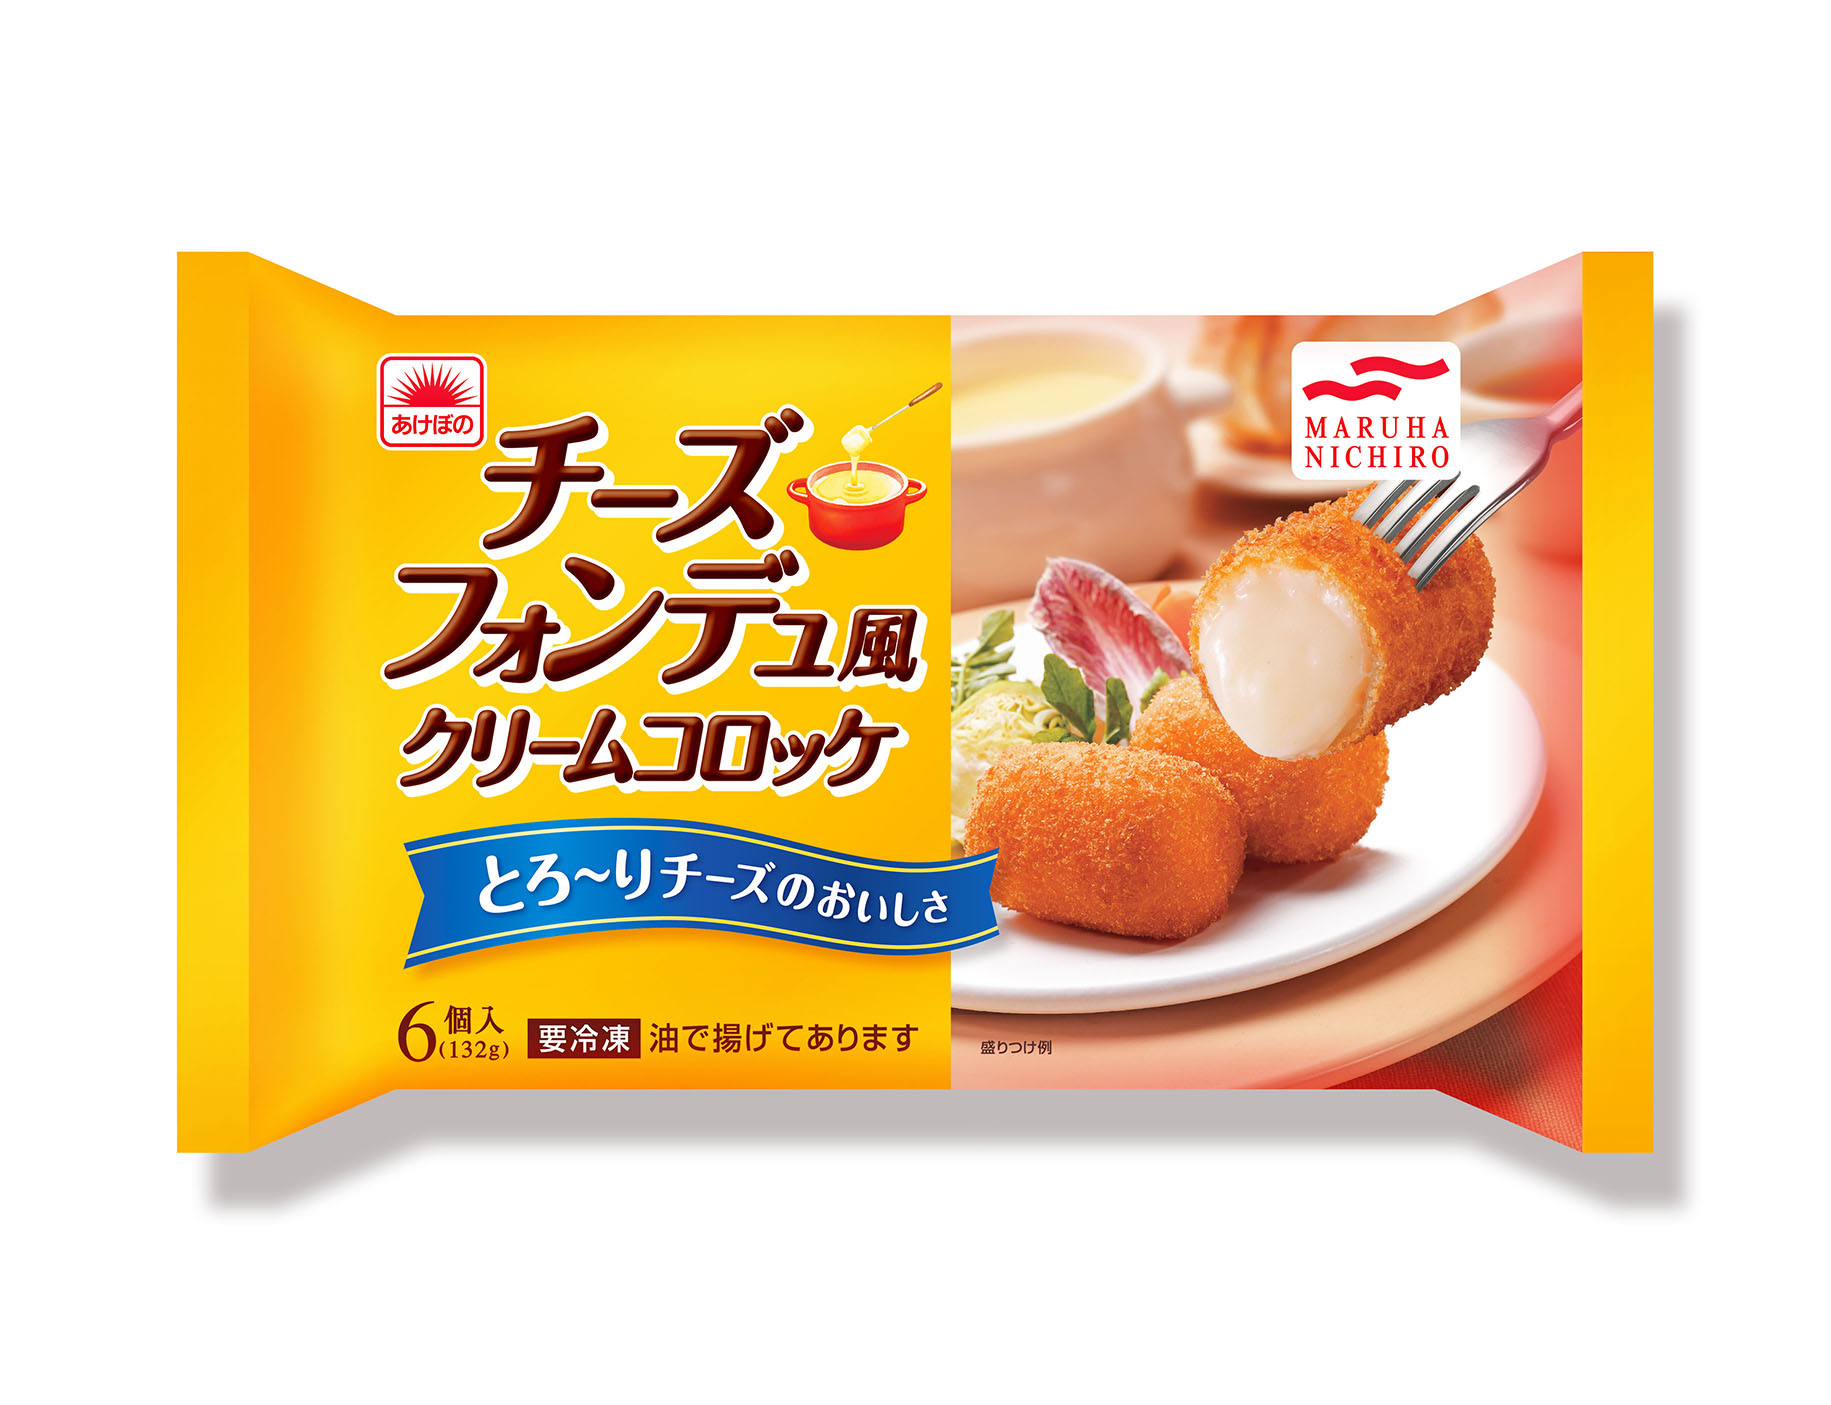 2015_cheesefonducreamcroquette3